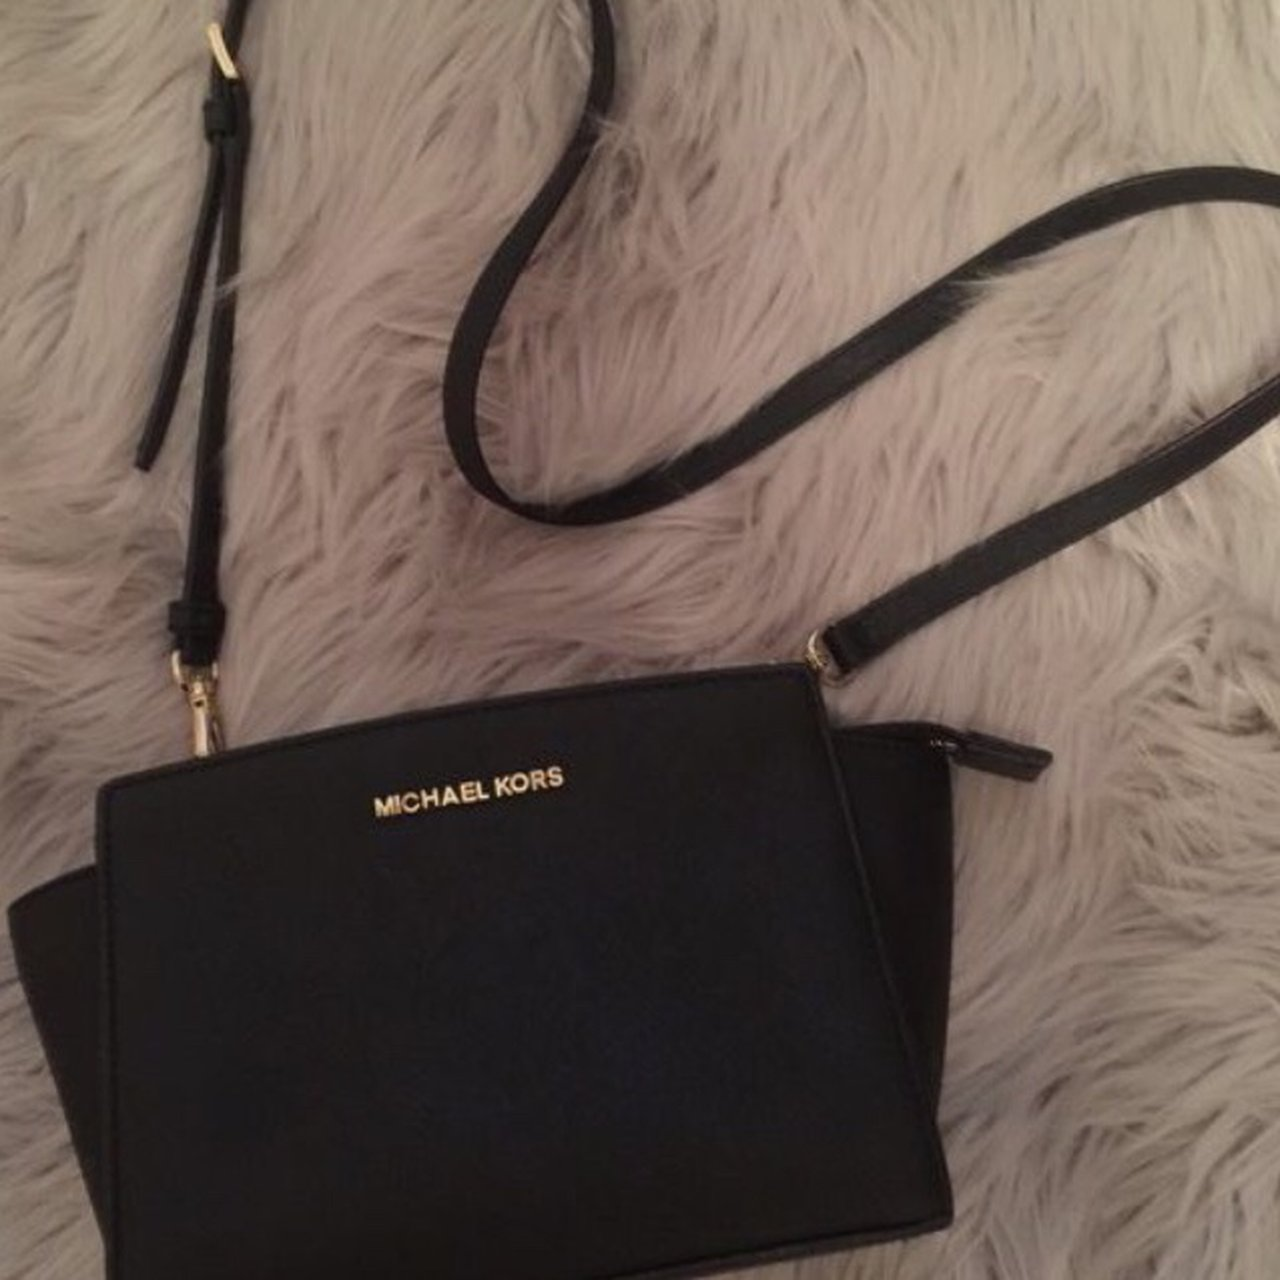 ccf616da1b Michael Kors mini bag . Looks brand new Bought for £200 - Depop